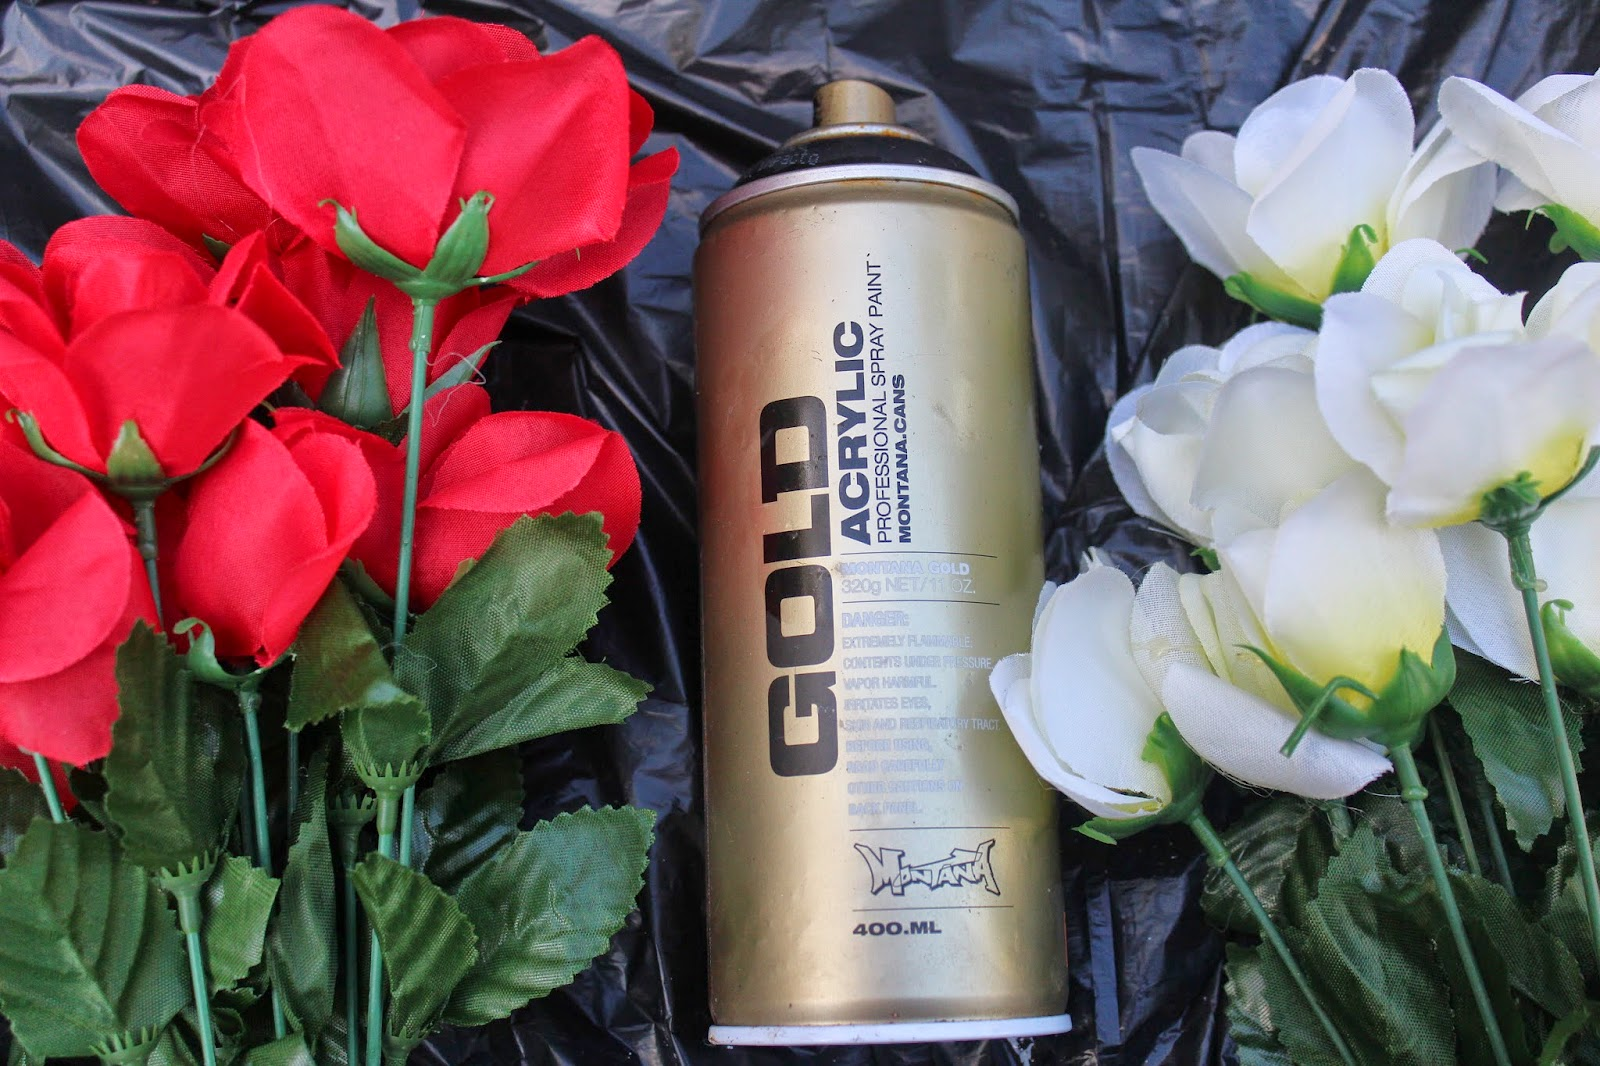 Spray paint for silk flowers gallery flower decoration ideas spray paint for silk flowers images flower decoration ideas spray paint for silk flowers image collections mightylinksfo